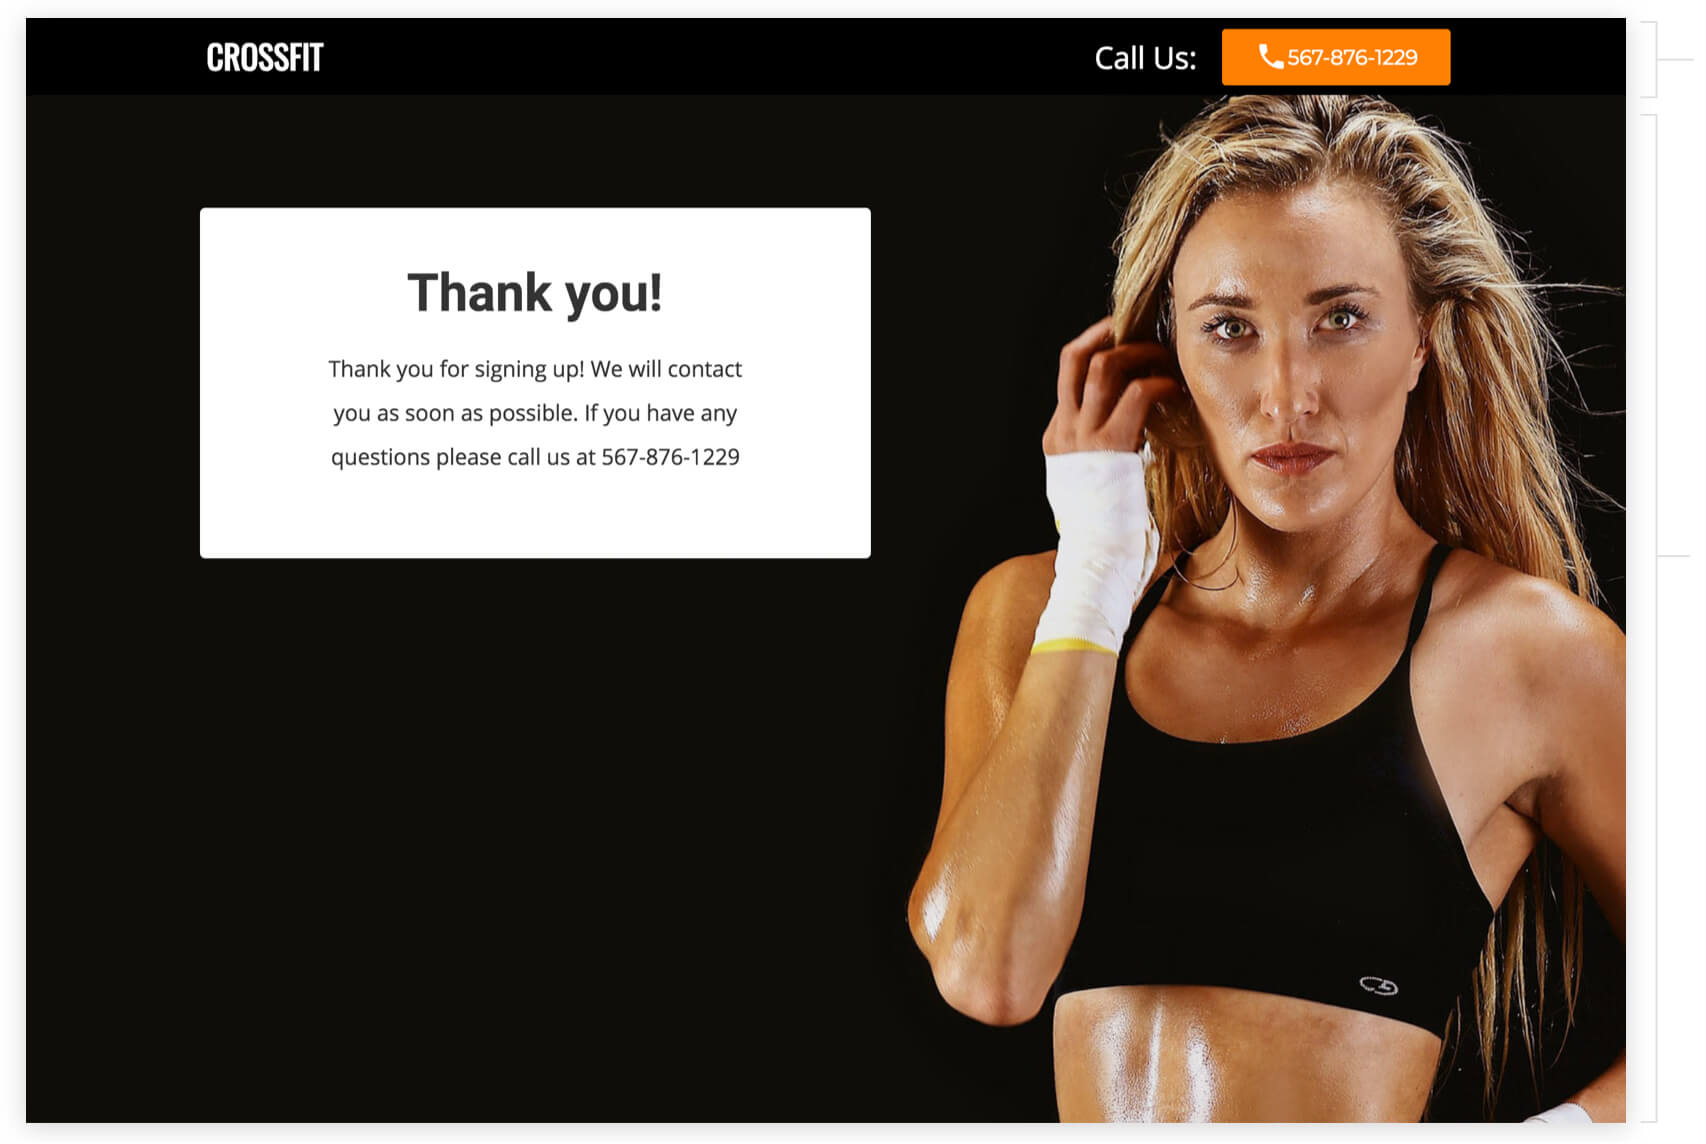 6-week fitness crossfit challenge thank you page